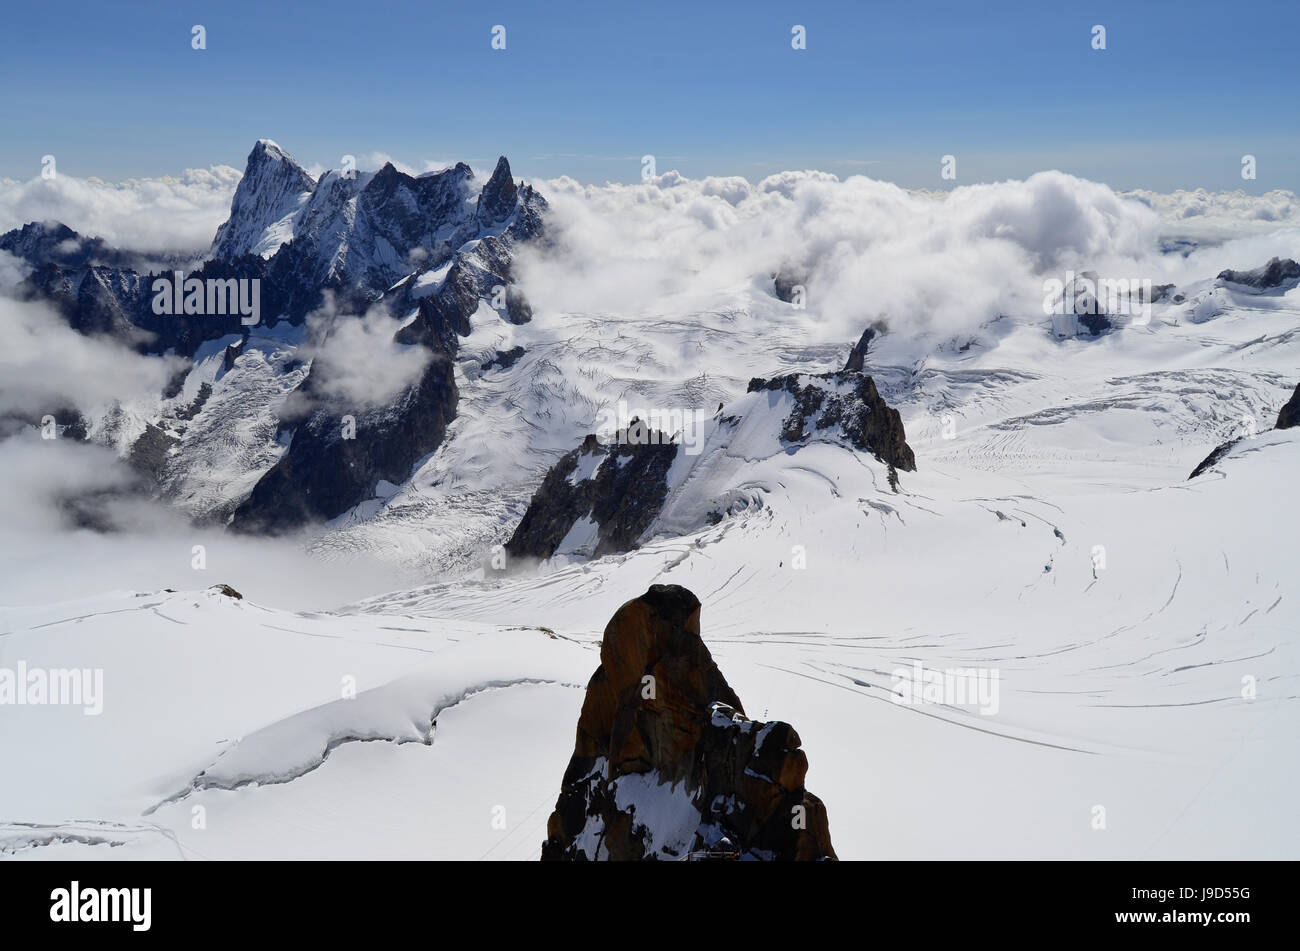 Snowy mountains above the clouds. View from the Aiguille du Midi	(France) Stock Photo